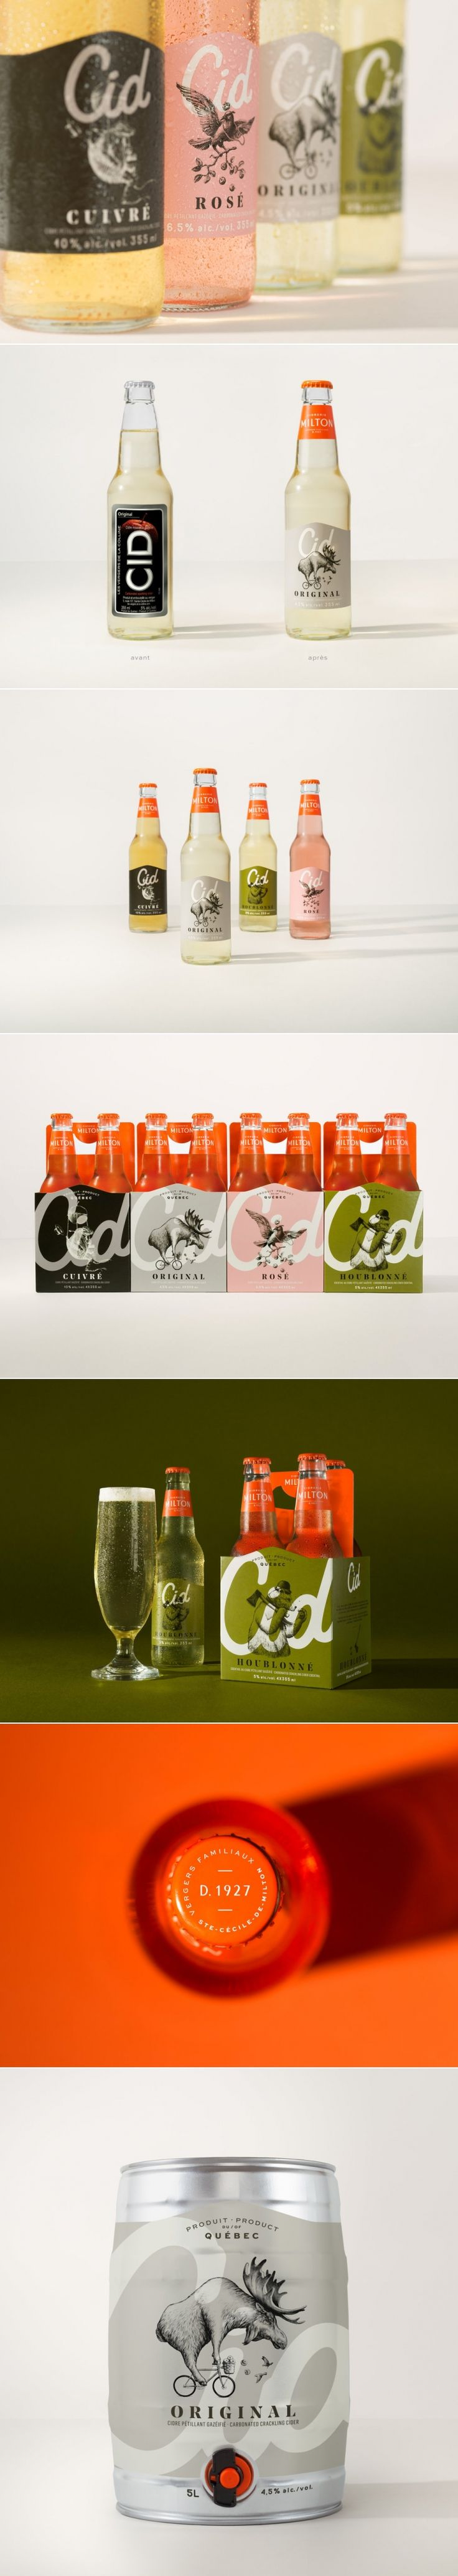 Cid is the Cider Where Classy Meets Fun — The Dieline   Packaging & Branding Design & Innovation News